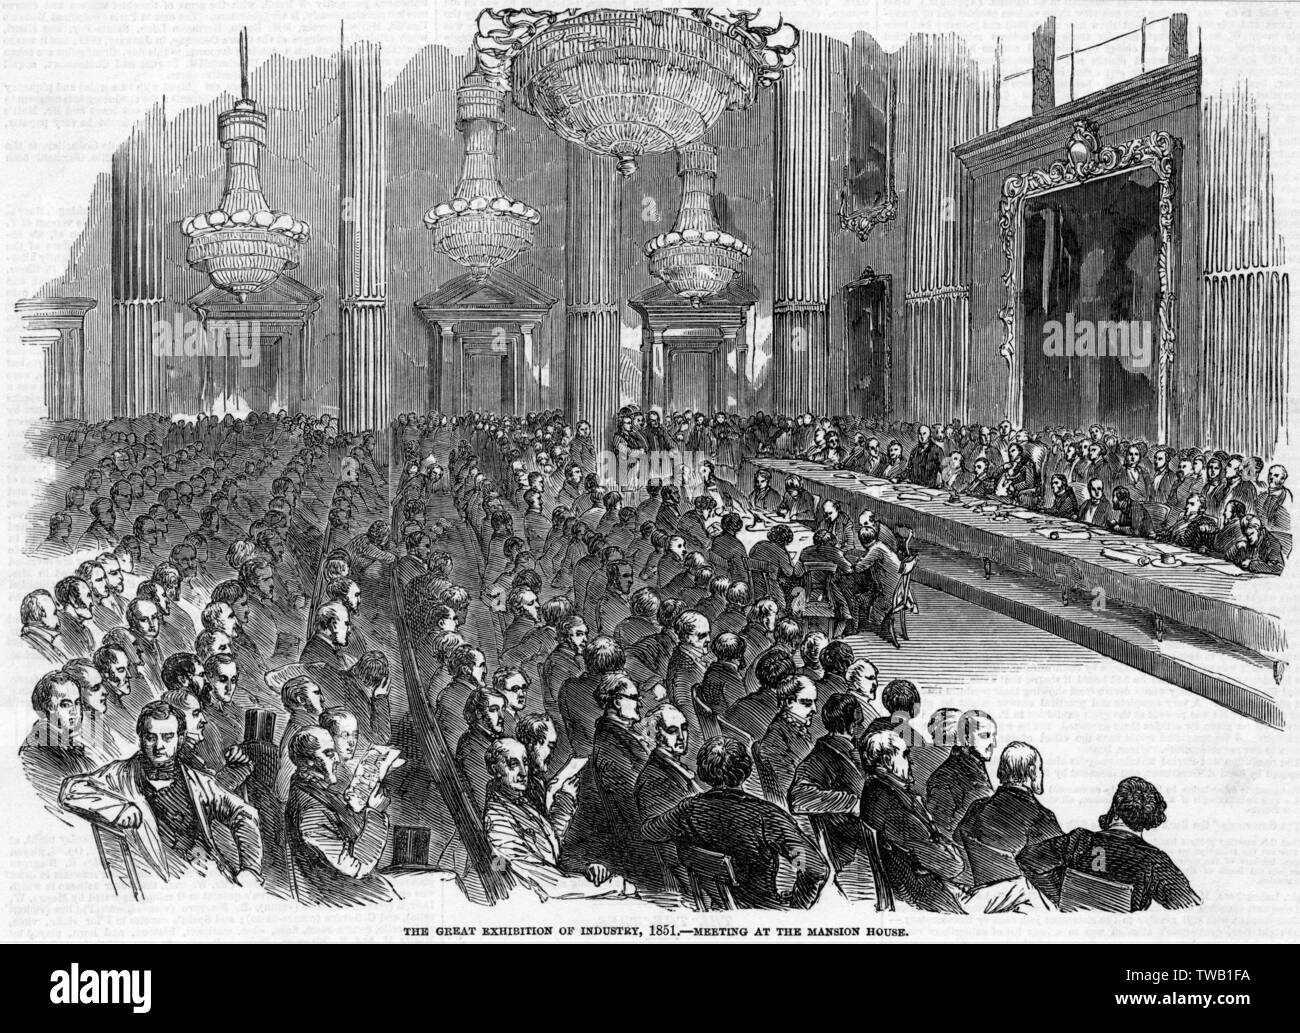 Albert and the Lord Mayor of London hold a meeting at the Mansion House, where leading merchants and manufacturers are invited to support the Exhibition project.      Date: 1850 - Stock Image